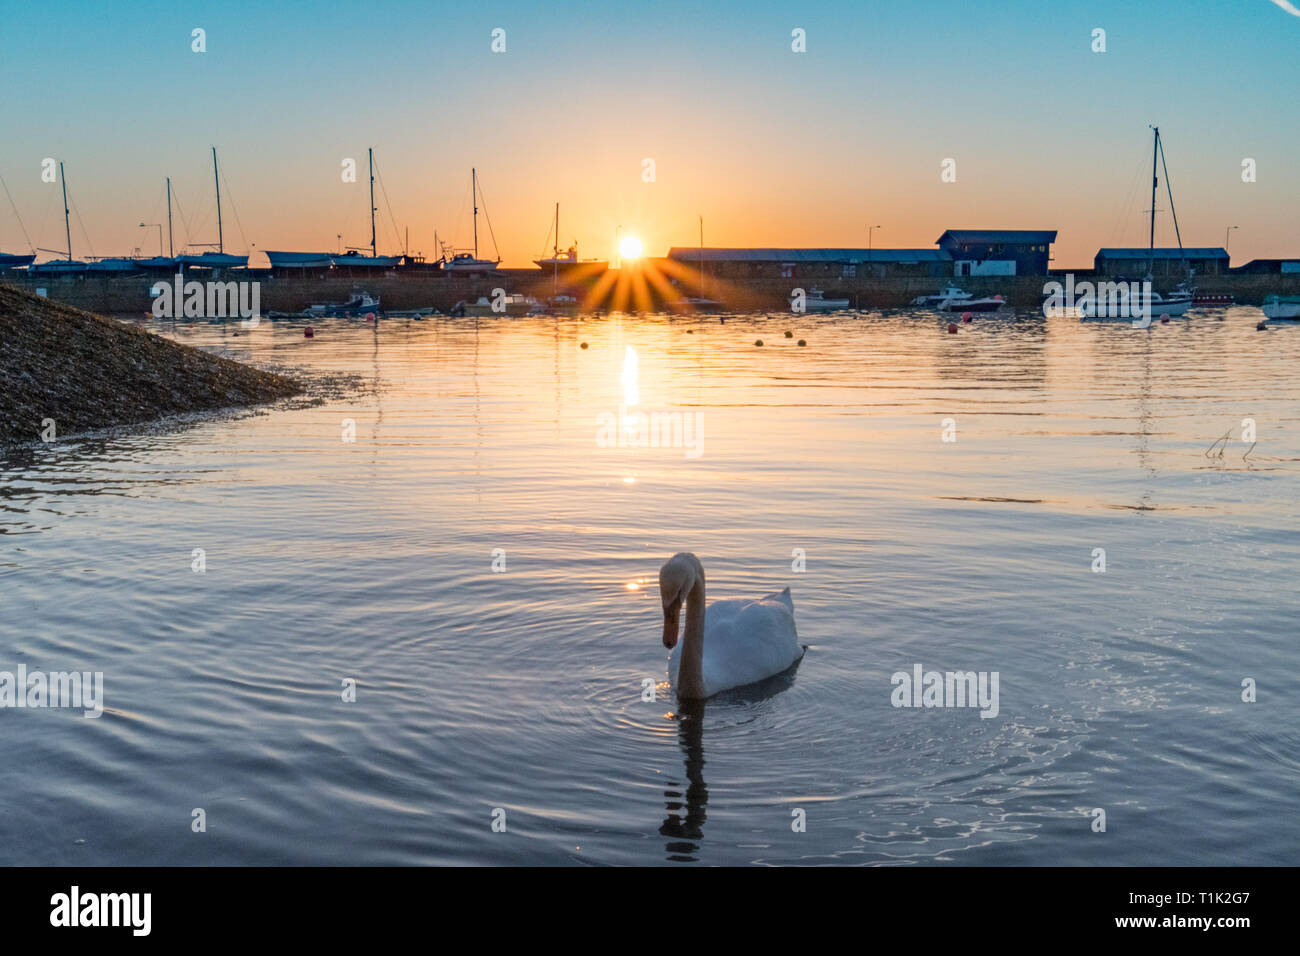 Penzance, Cornwall, UK. 27th Mar, 2019. UK Weather. Feeling cooler than yesterday, but still a glorious sunrise at Penzance harbour, with these inquisitive swans coming to meet the photographer at the waters edge. Credit: Simon Maycock/Alamy Live News Stock Photo